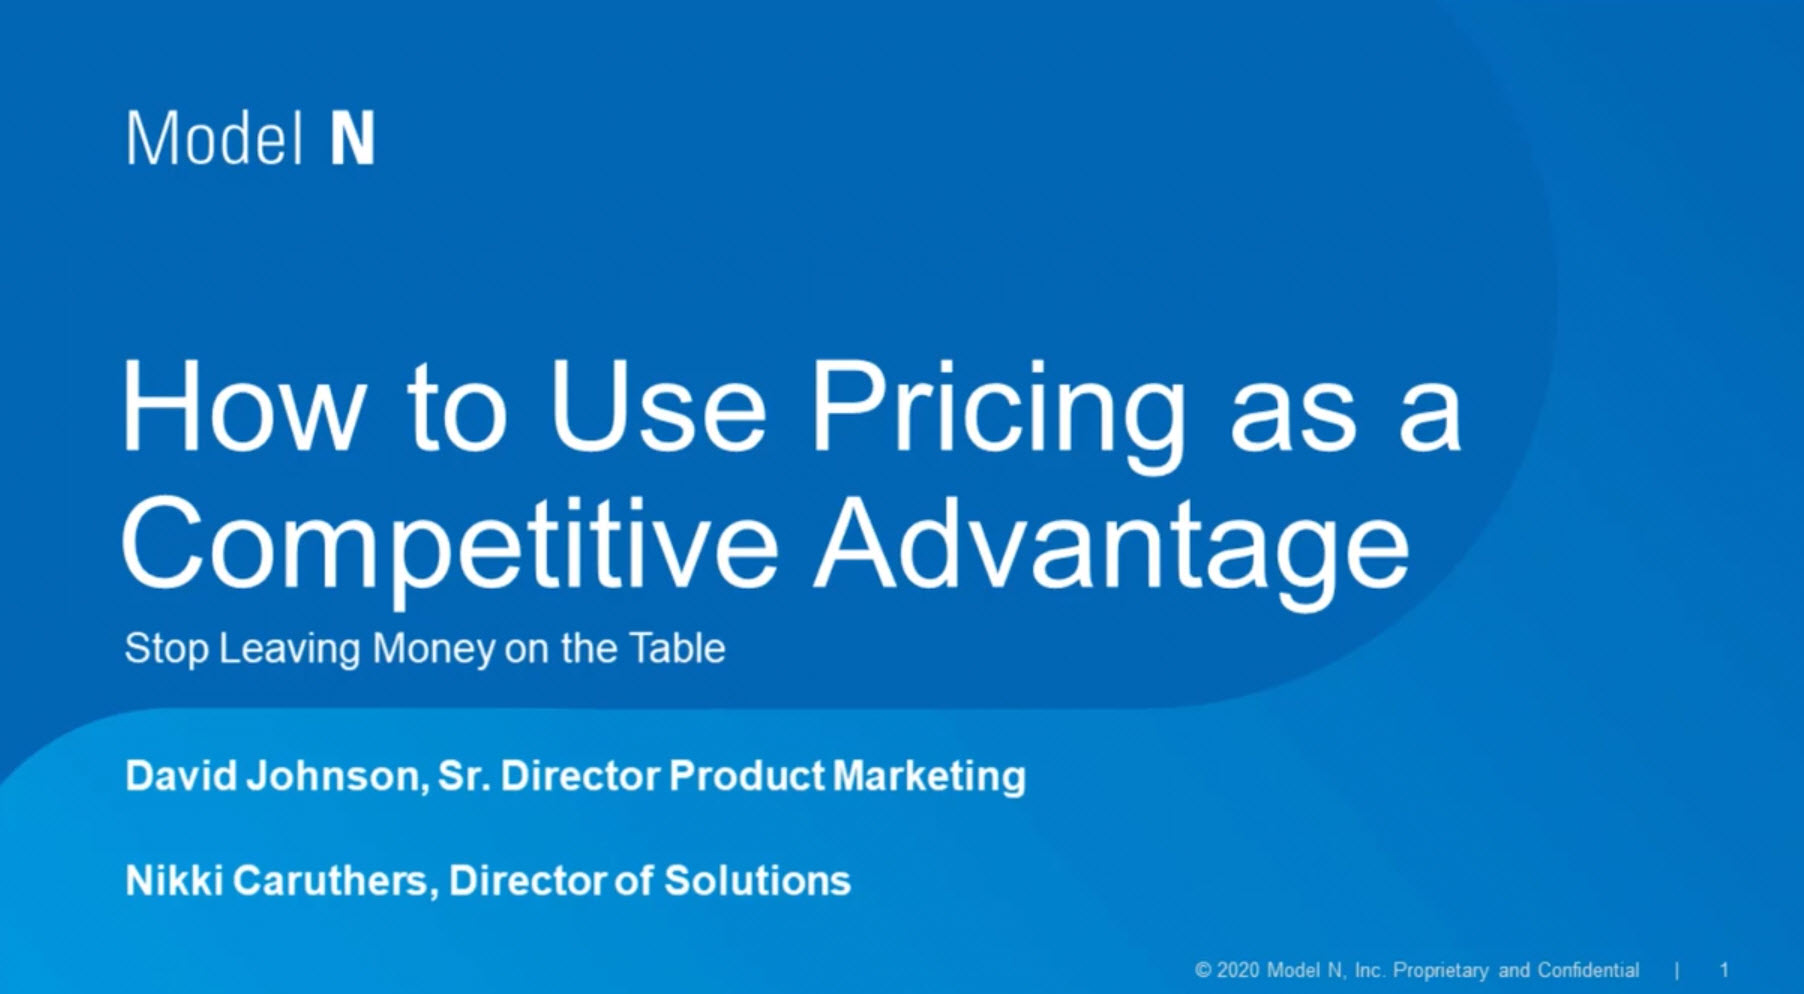 webinar-how-to-use-pricing